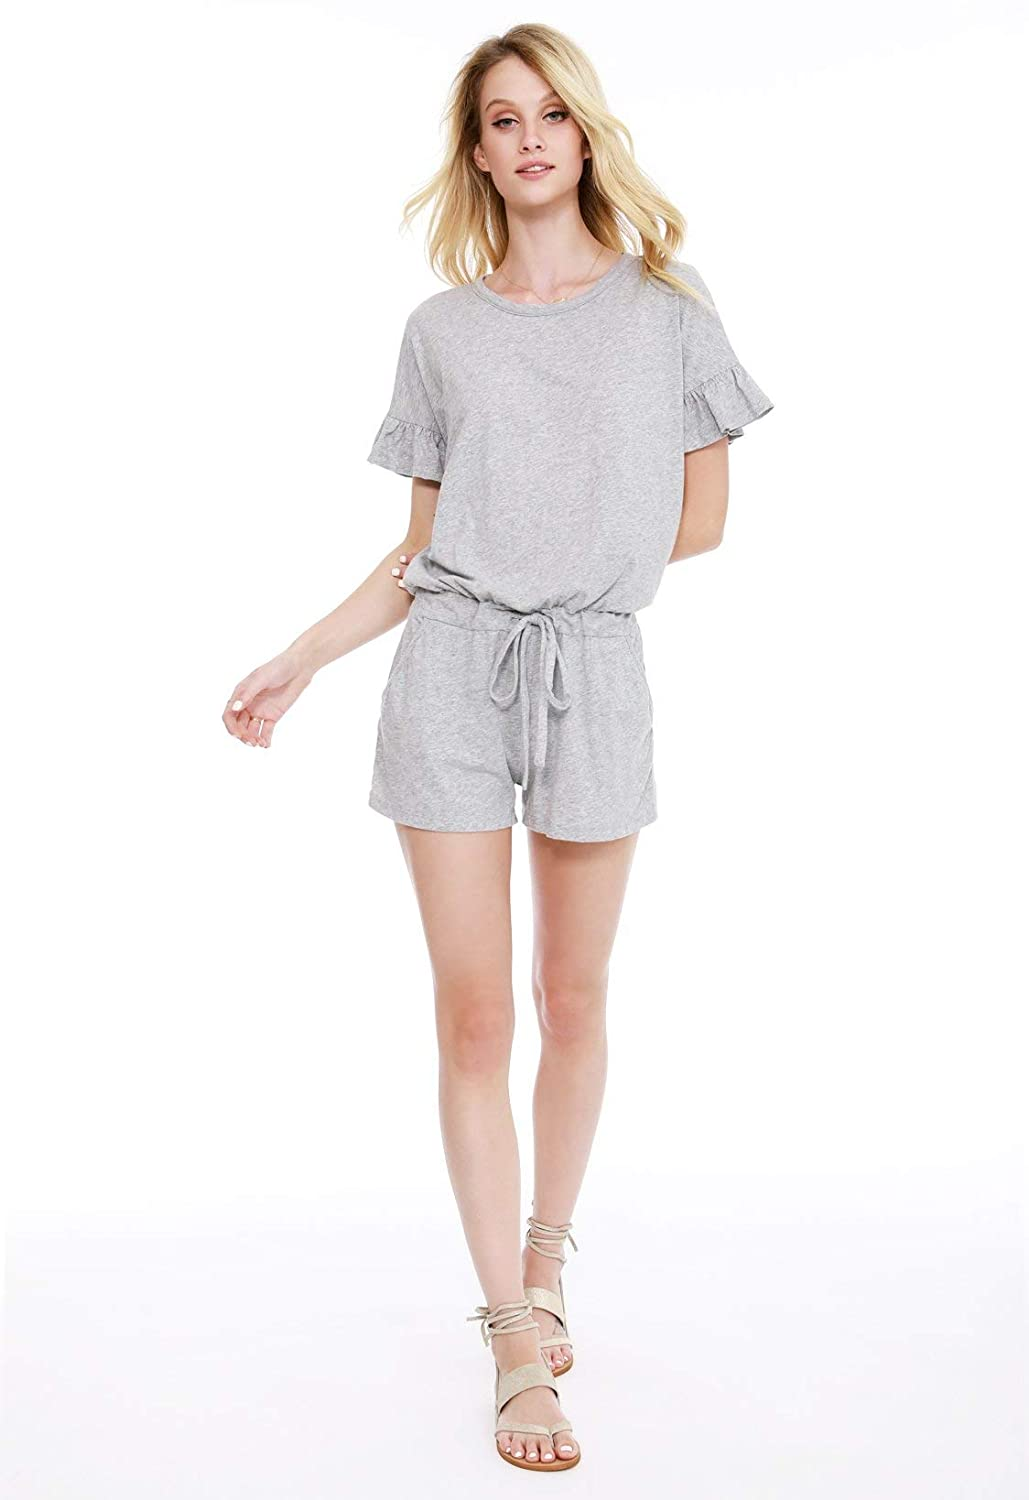 95a758a4cb18 Amazon.com  bobi Ruffle Sleeve Romper  Clothing